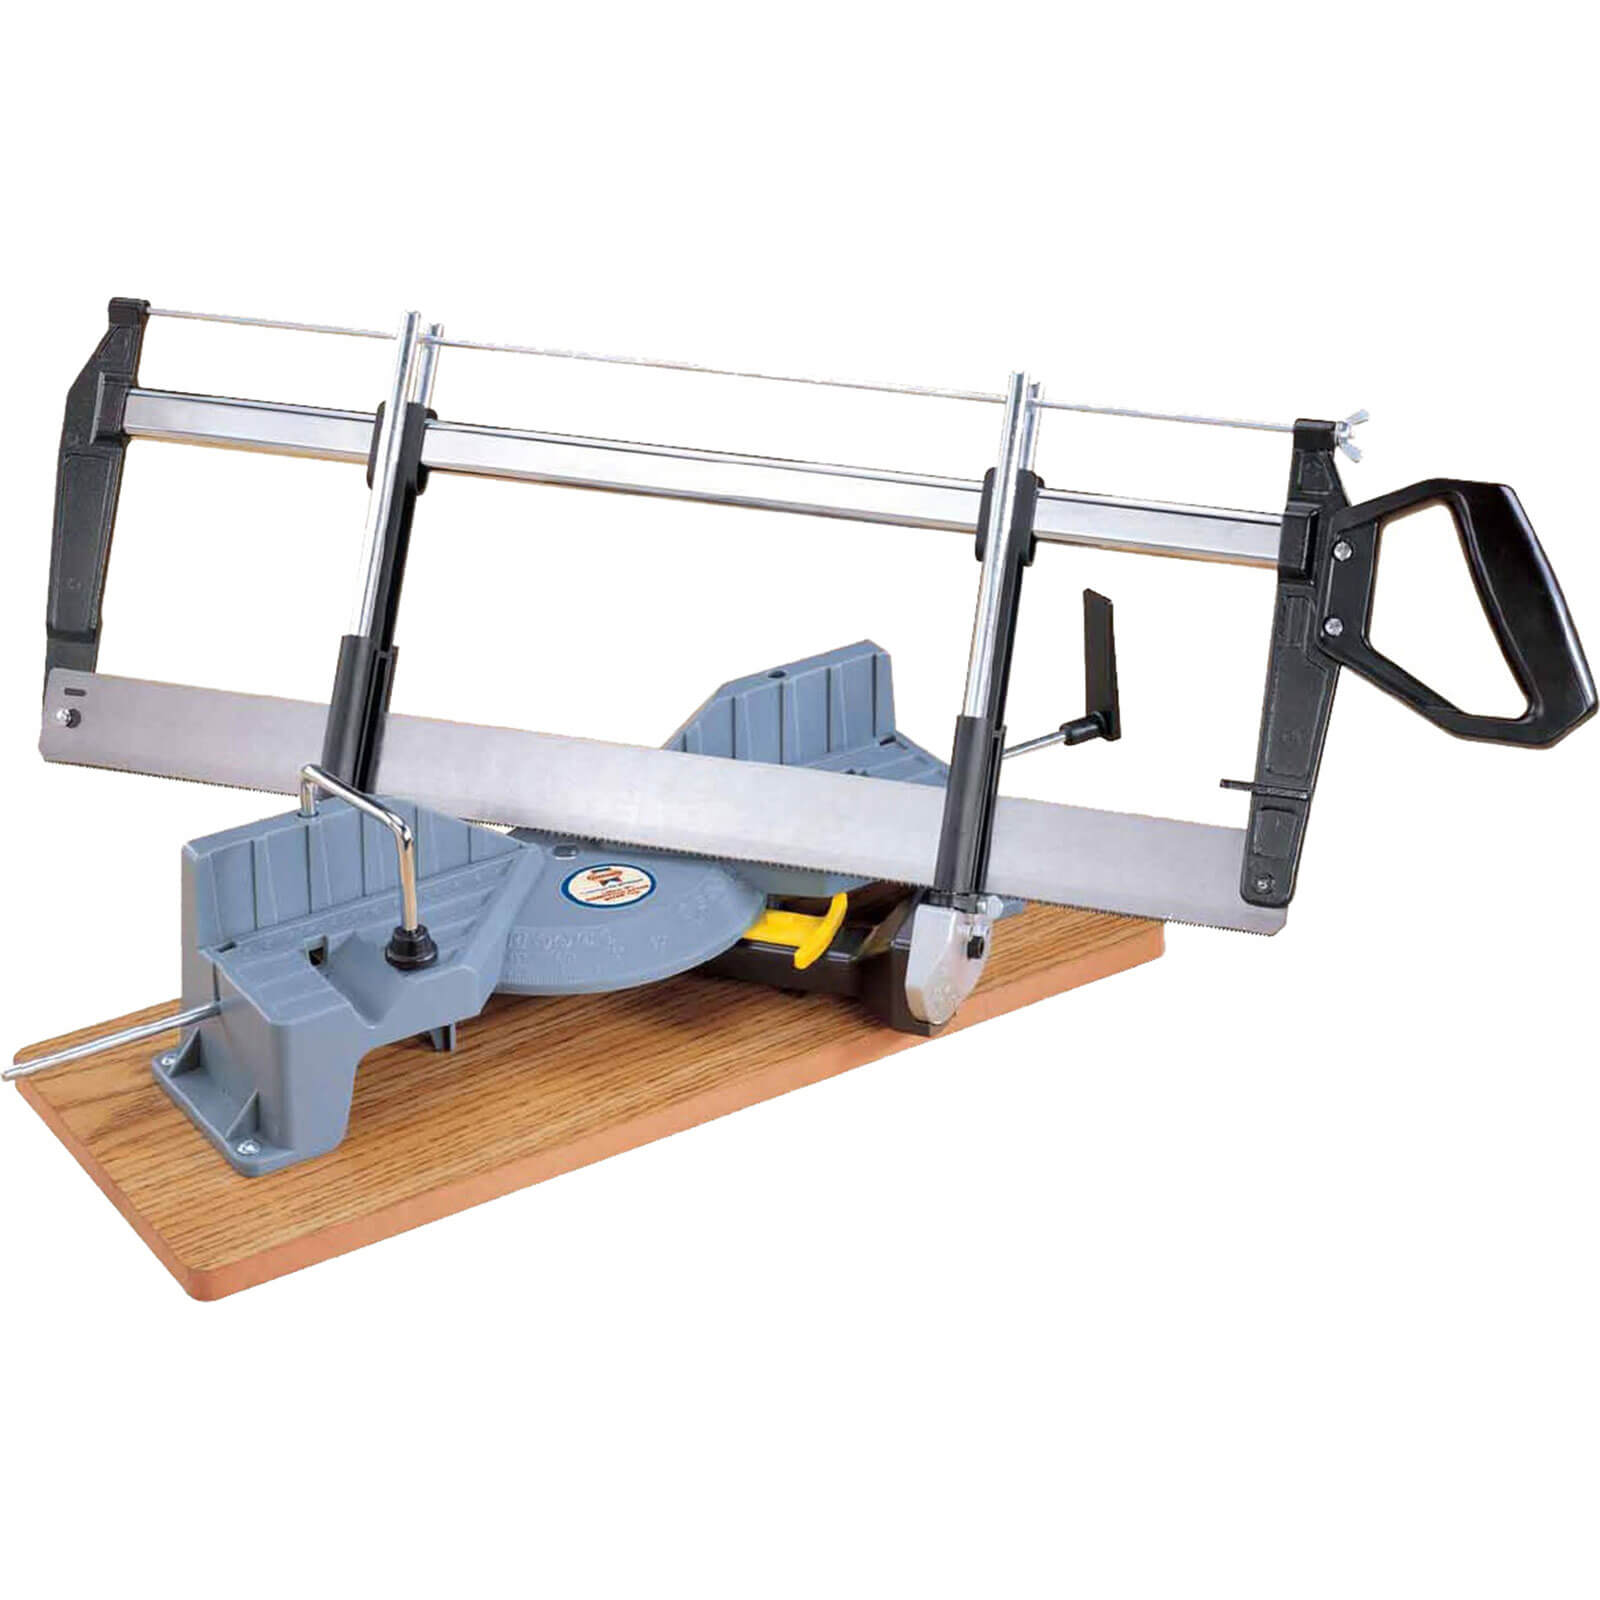 150mm Compound Mitre Saw A high quality compound action mitre ...